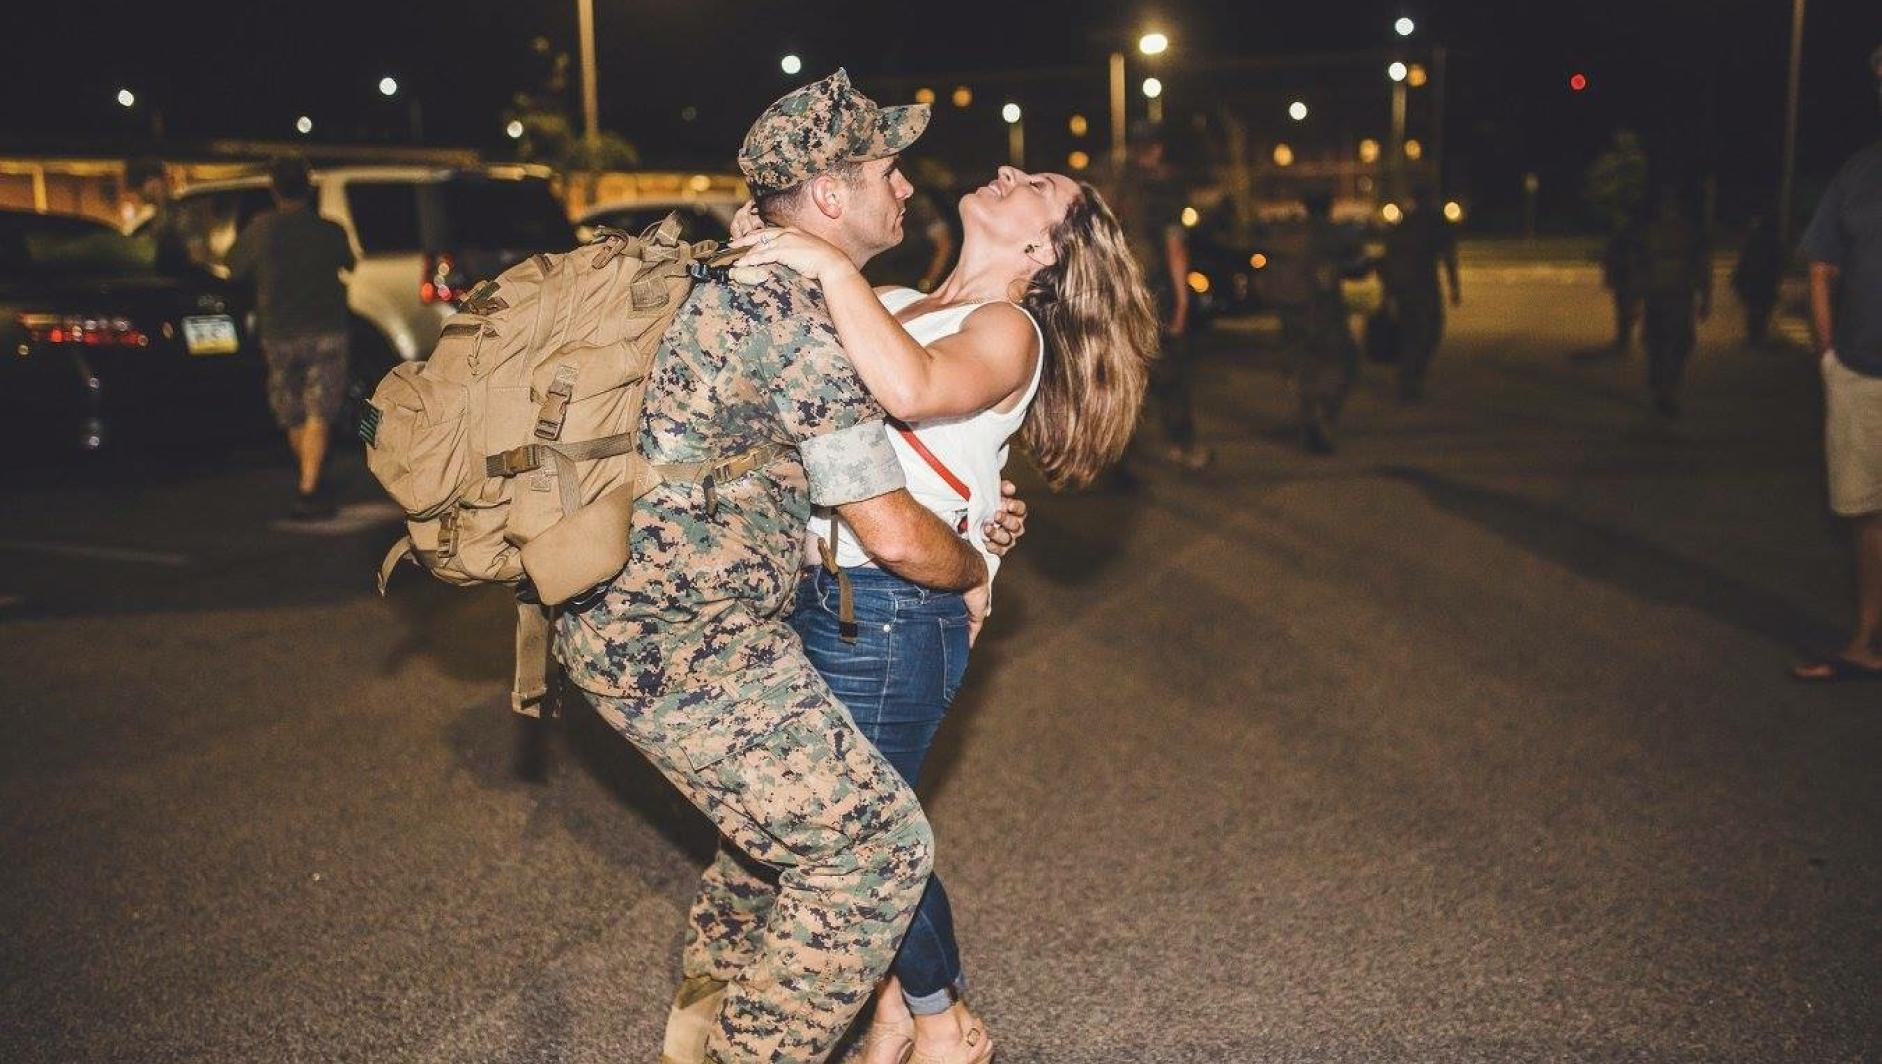 McDonald and her husband greet after a deployment.